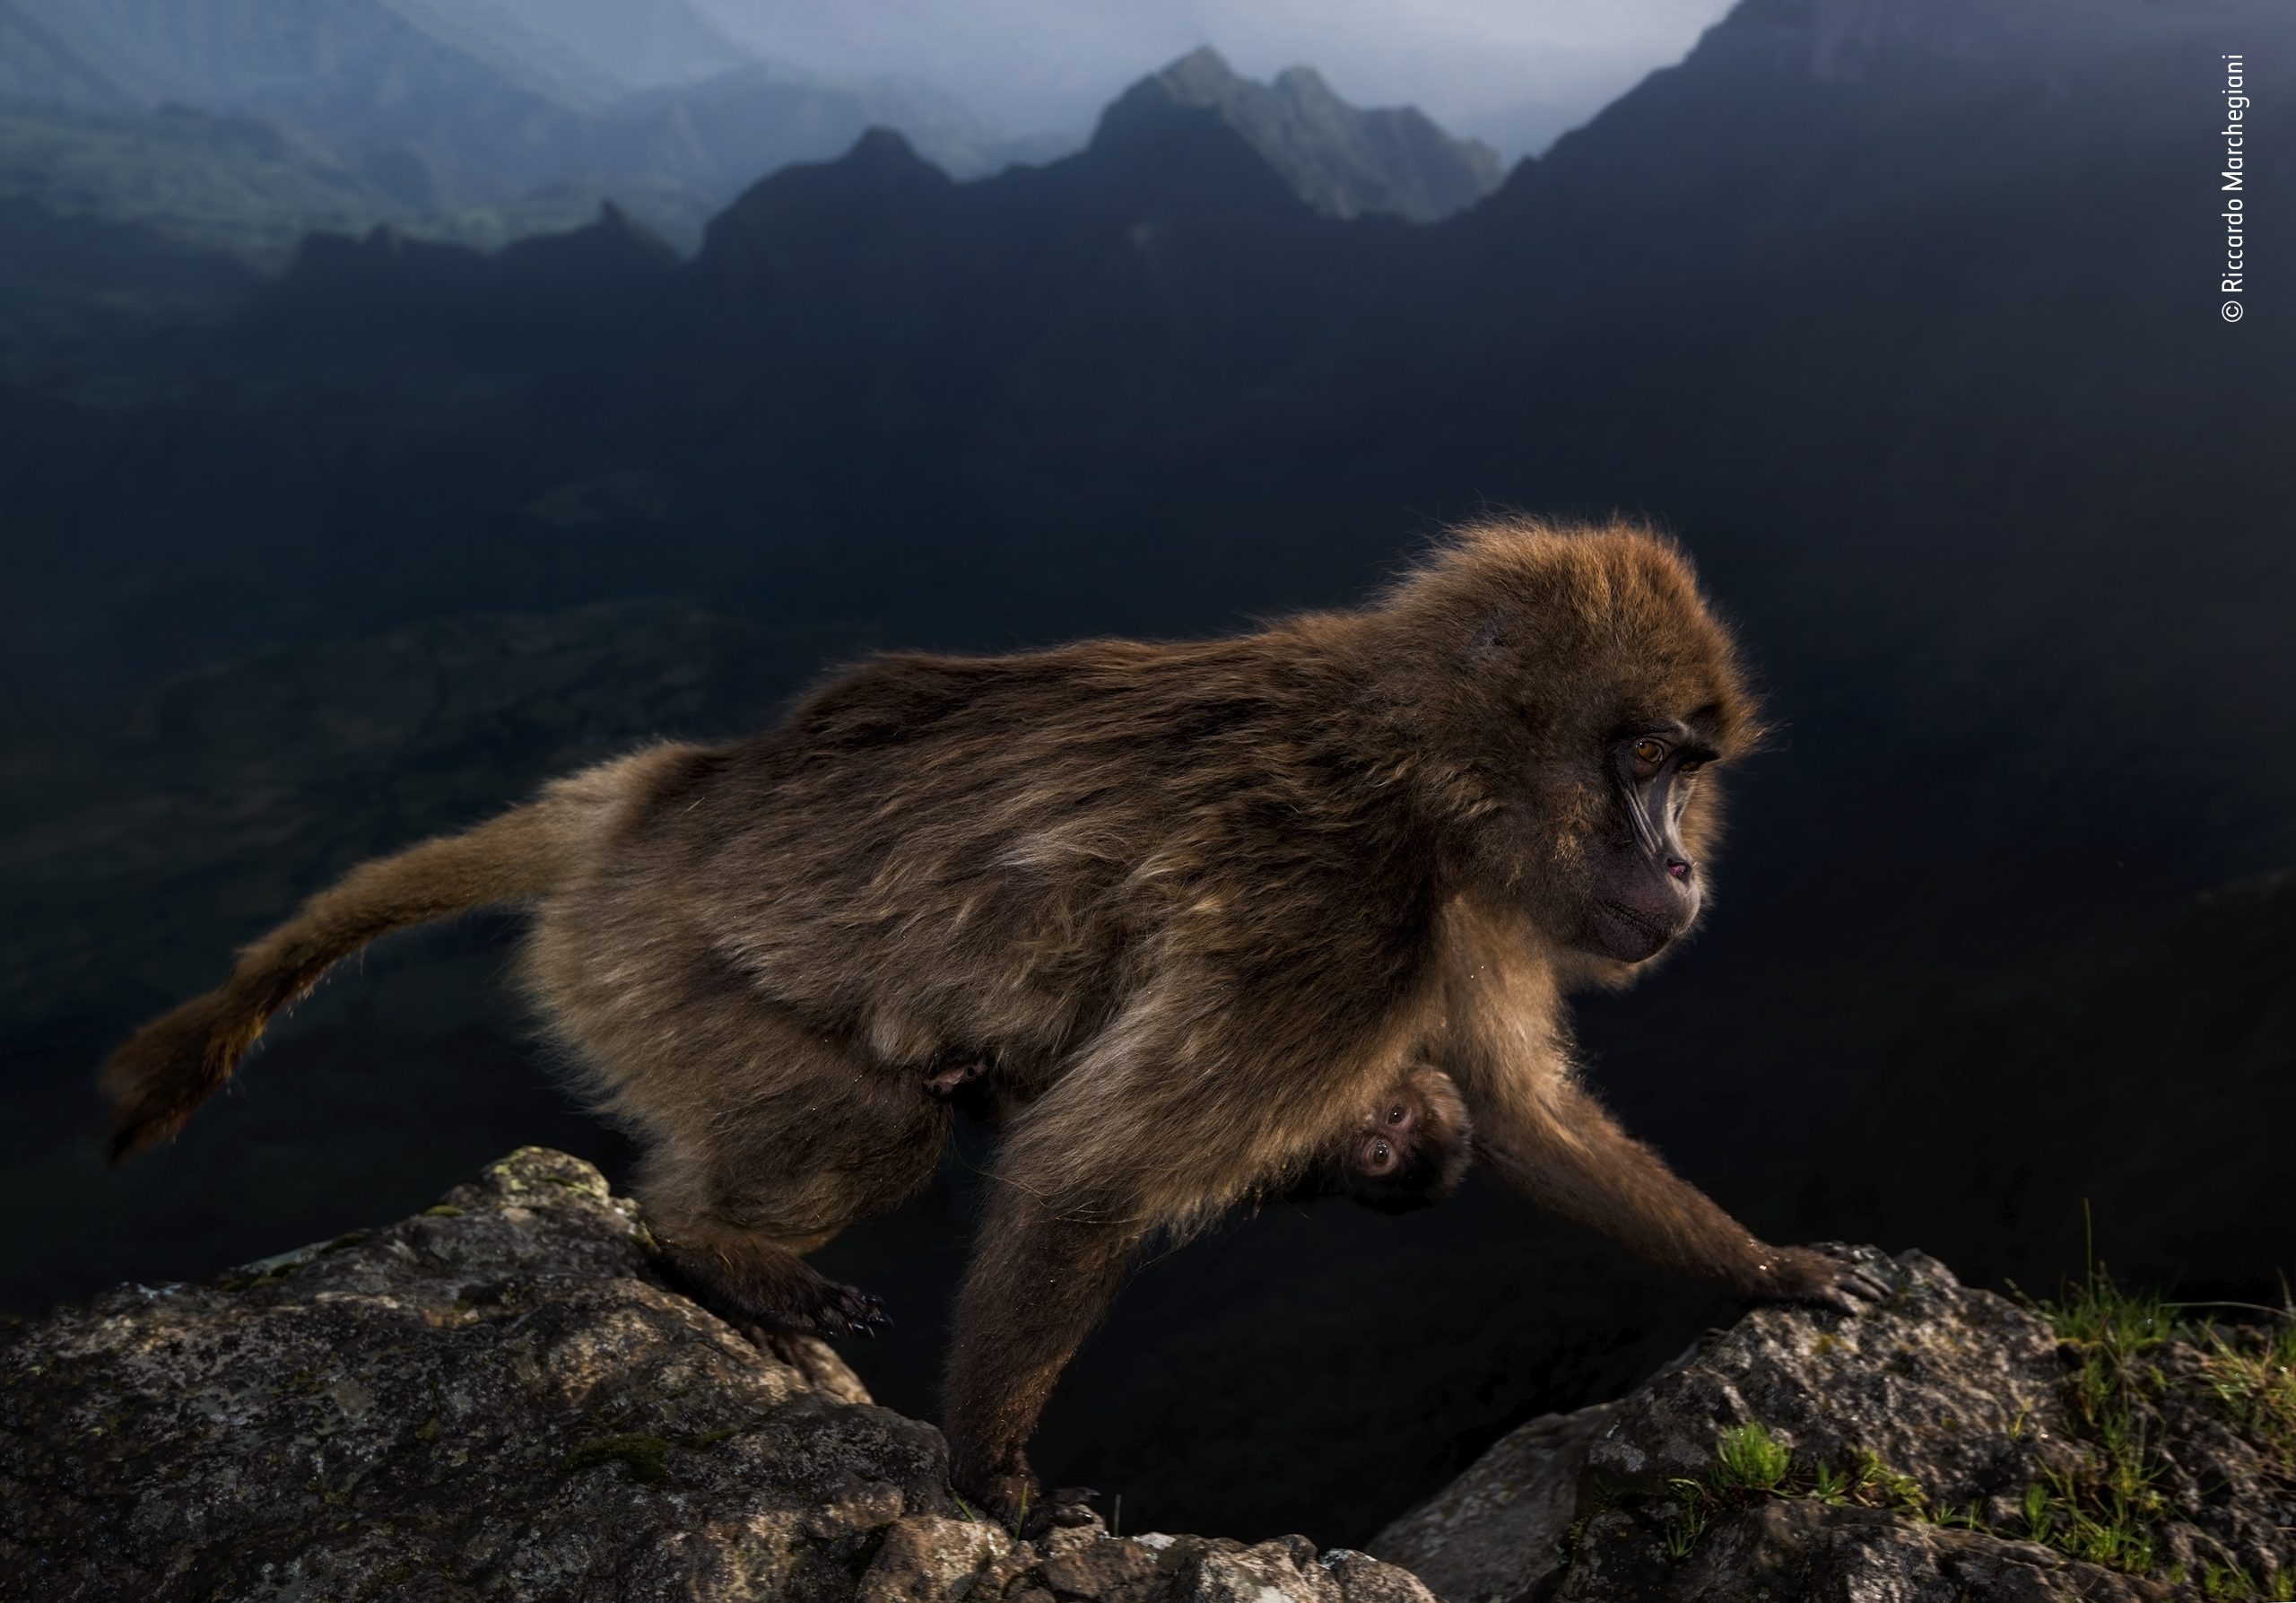 © Riccardo Marchegiani - Wildlife Photographer of the Year